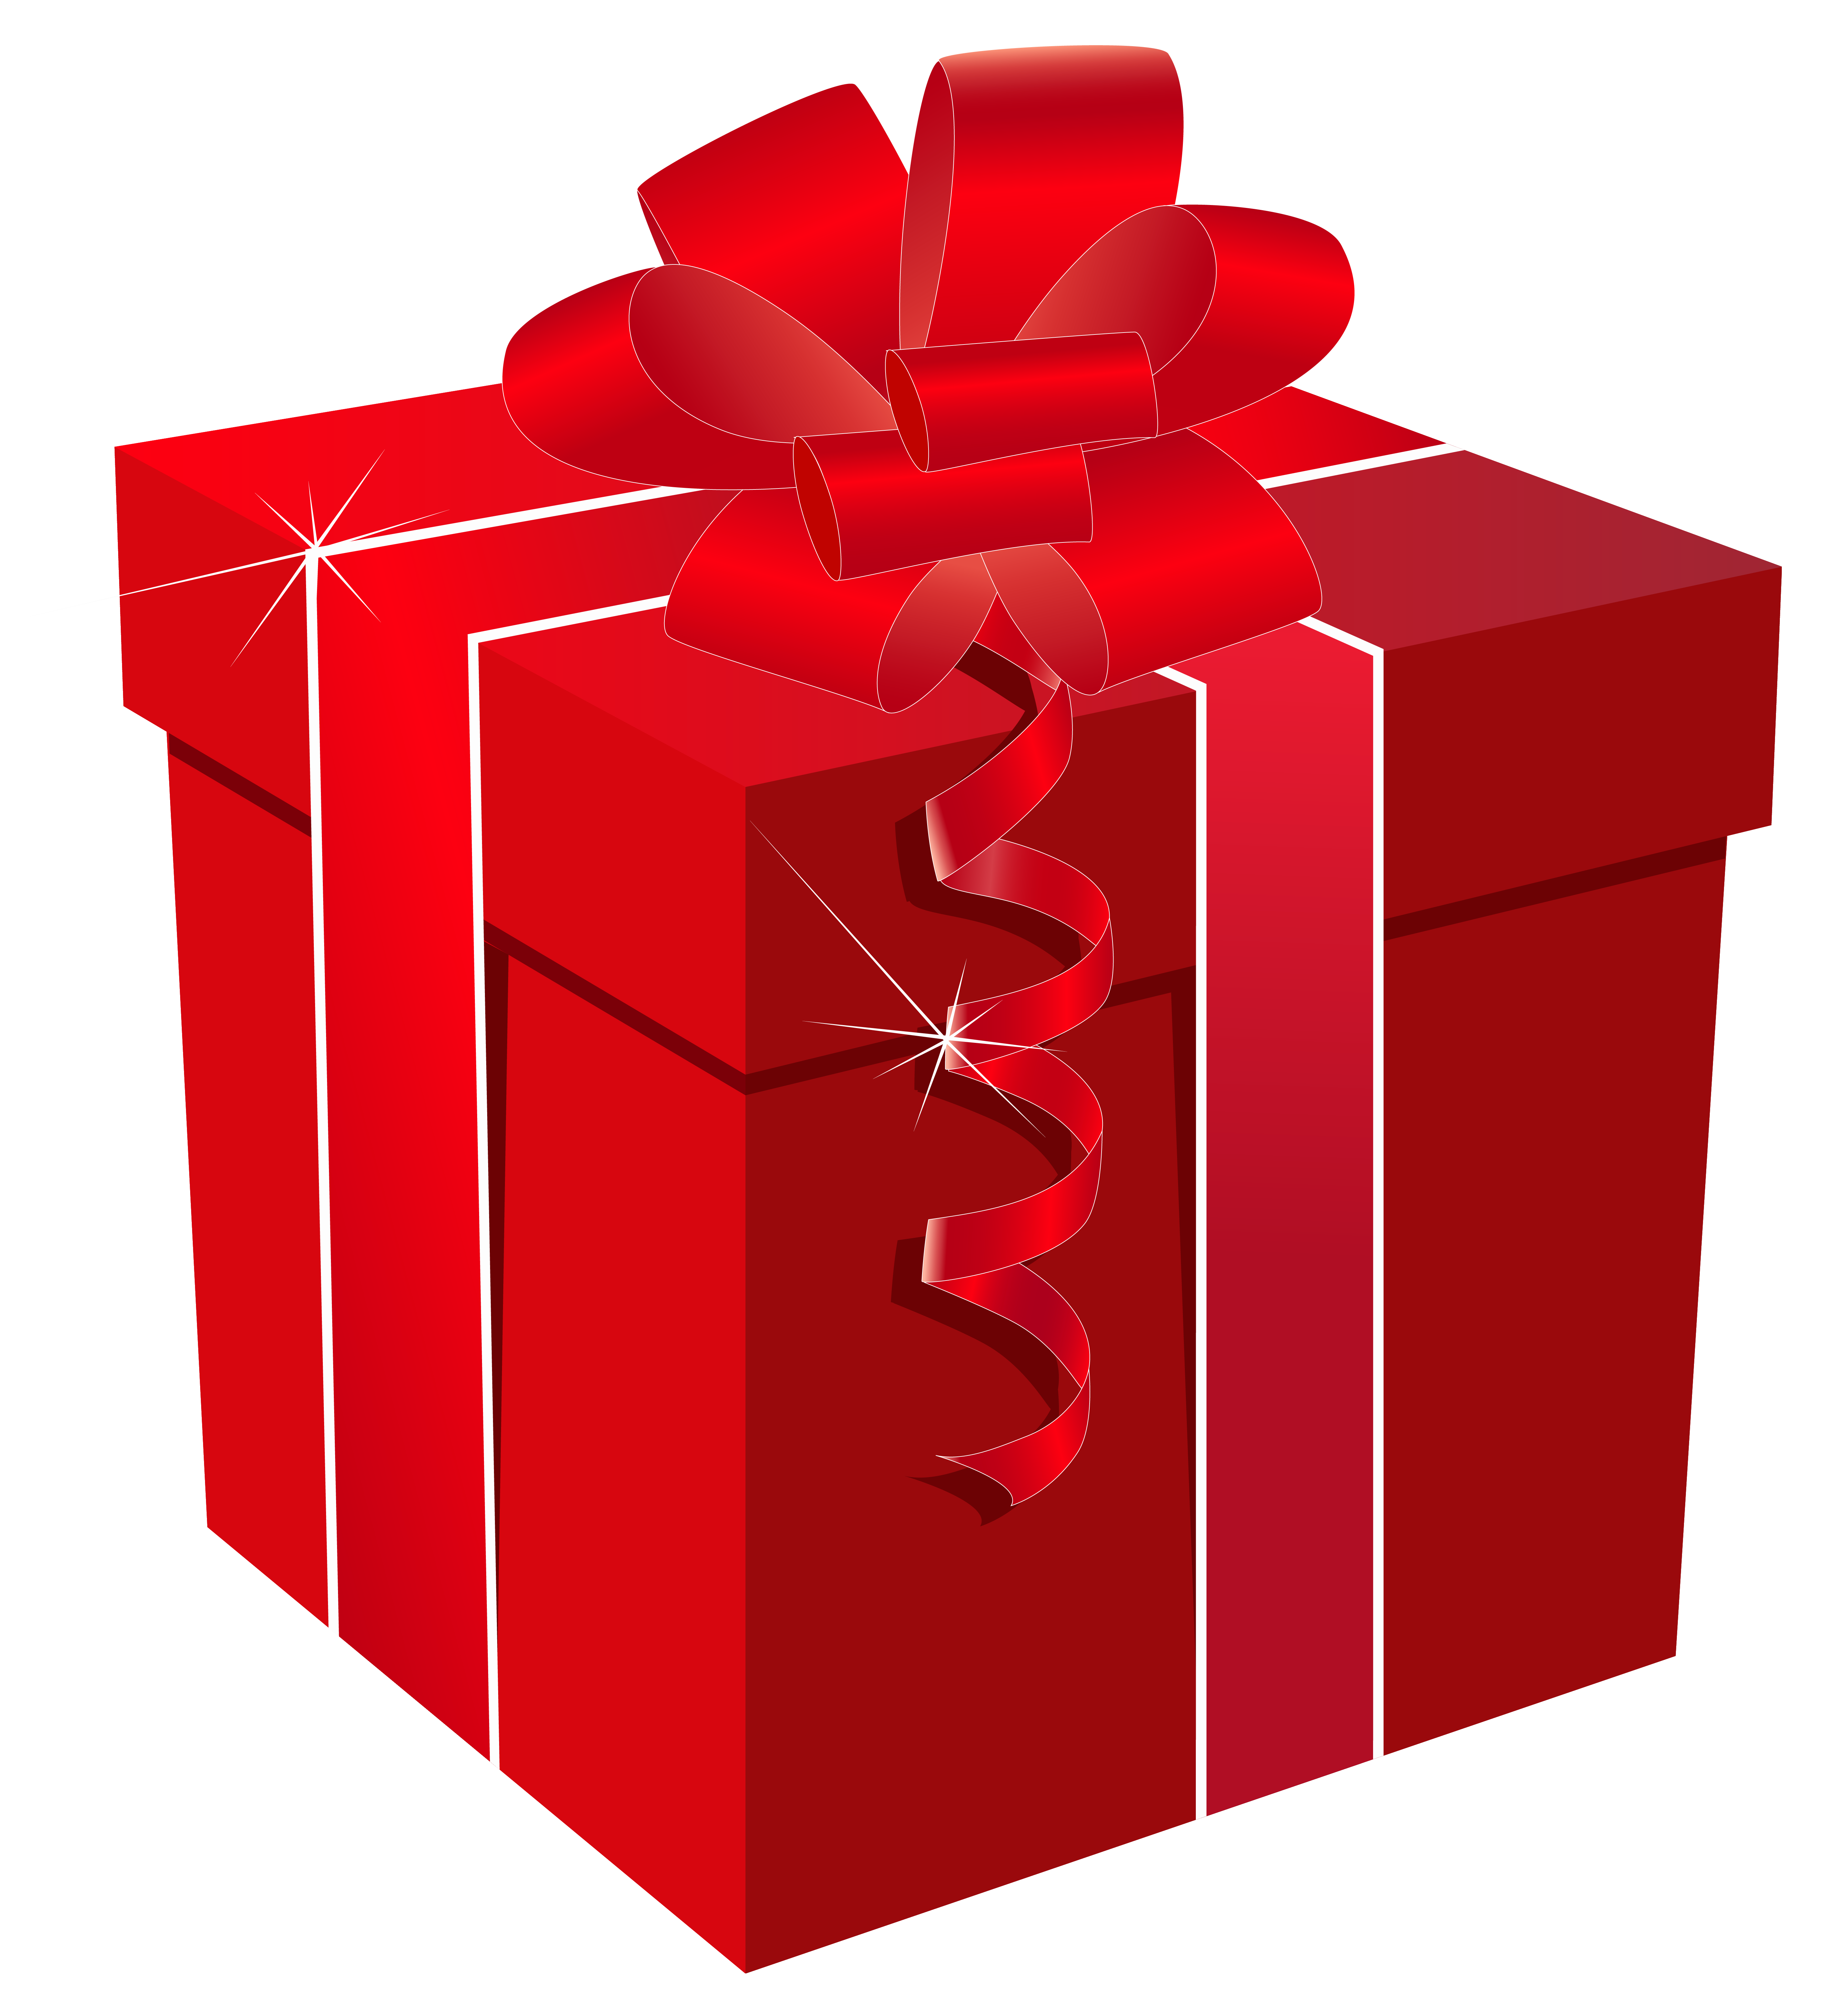 Clipart png gift. Red box with bow